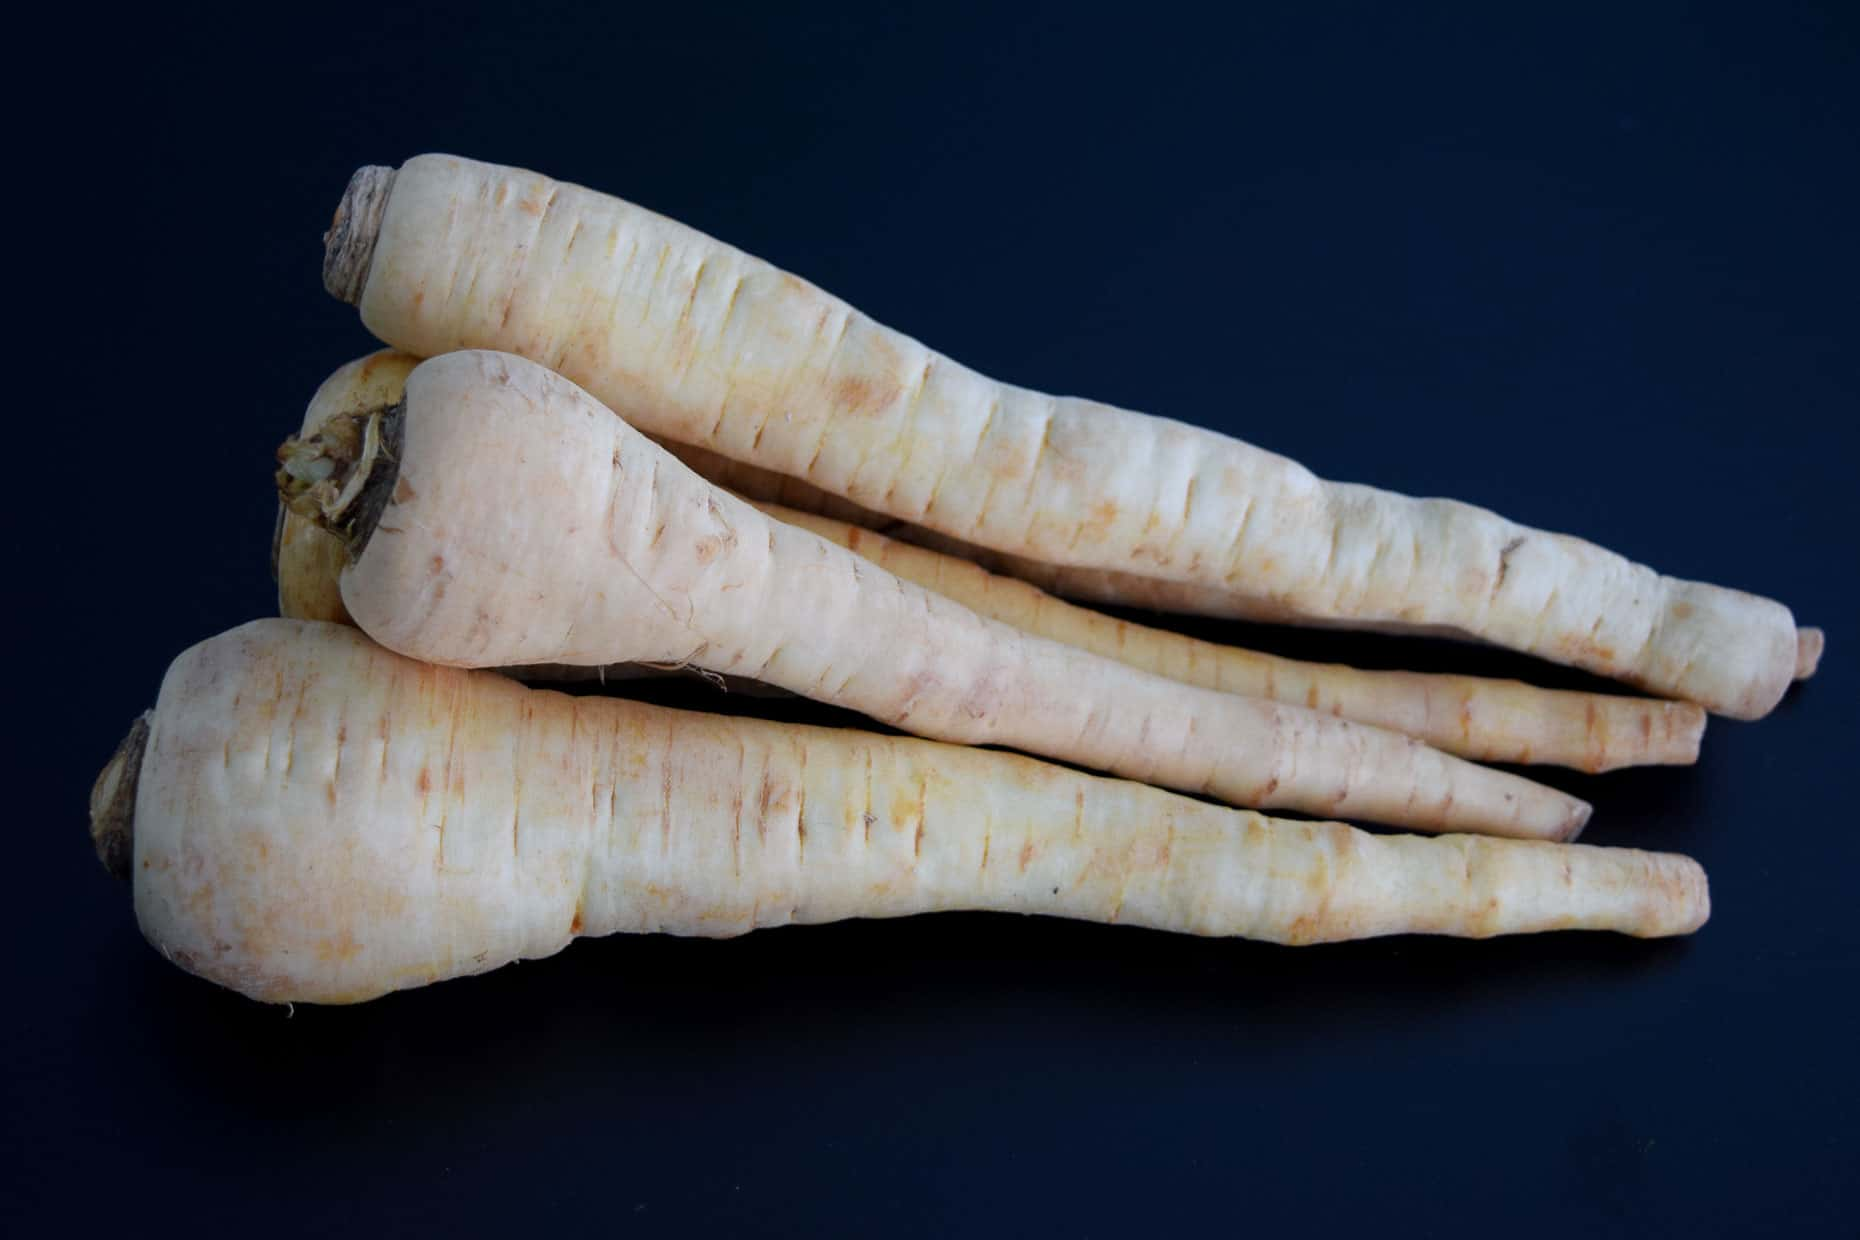 Parsnips on black background